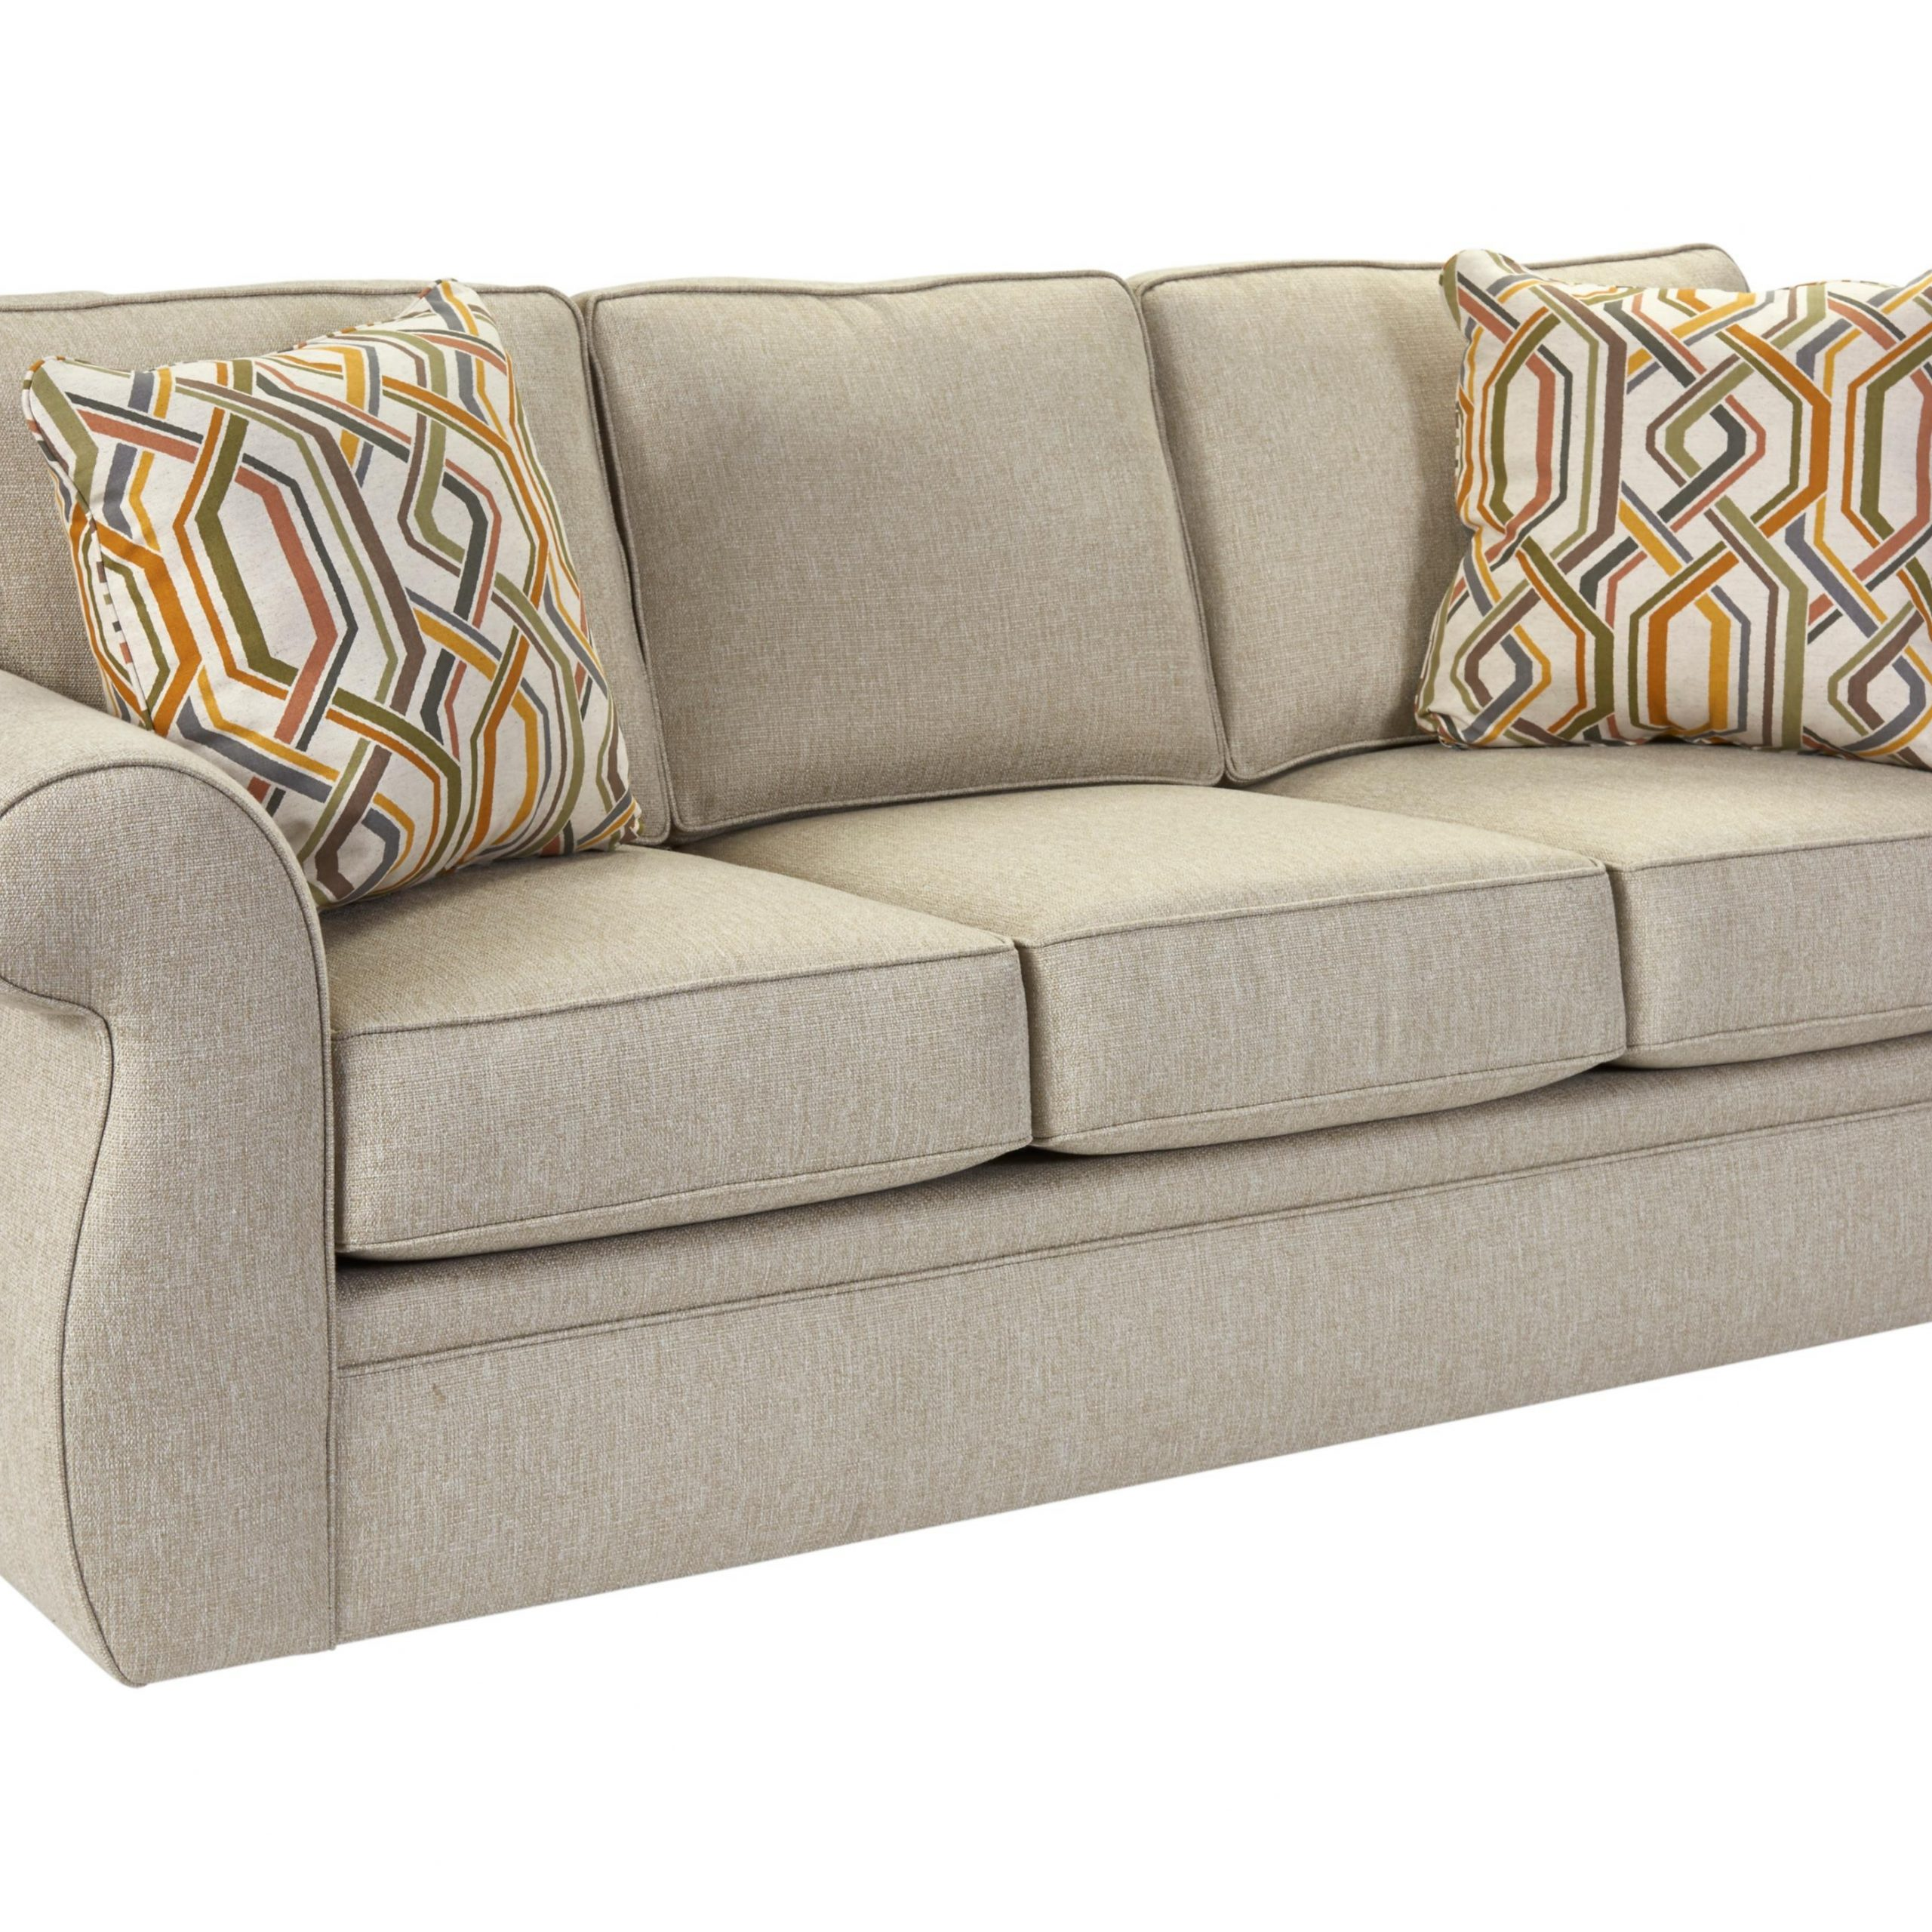 Broyhill Furniture Veronica Traditional Sofa With Oversize Regarding Broyhill Sectional Sofas (View 2 of 15)